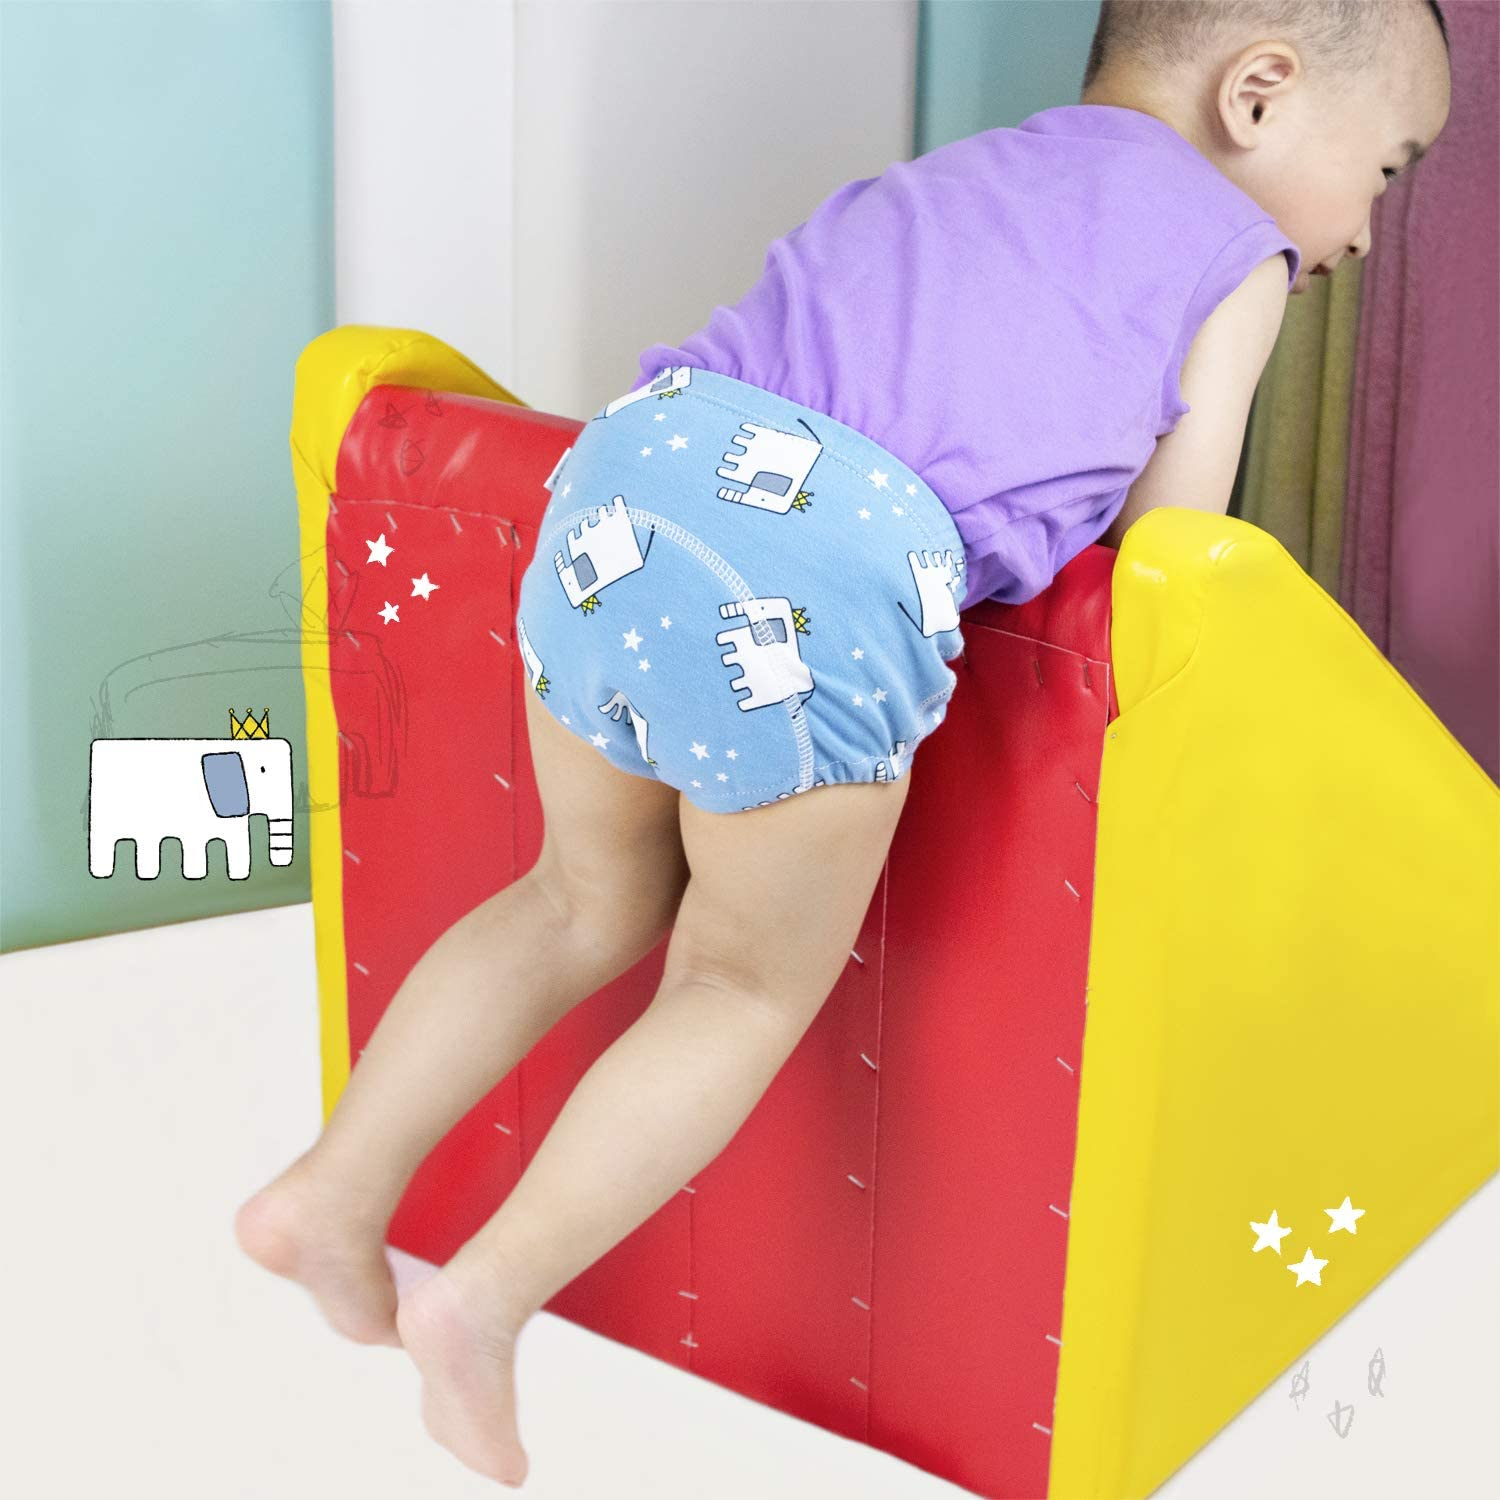 Max Shape Baby Toddler 2 Pack Cotton Training Pants Toddler Potty Training Underwear for Boy and Girl 12M,2T,3T,4T